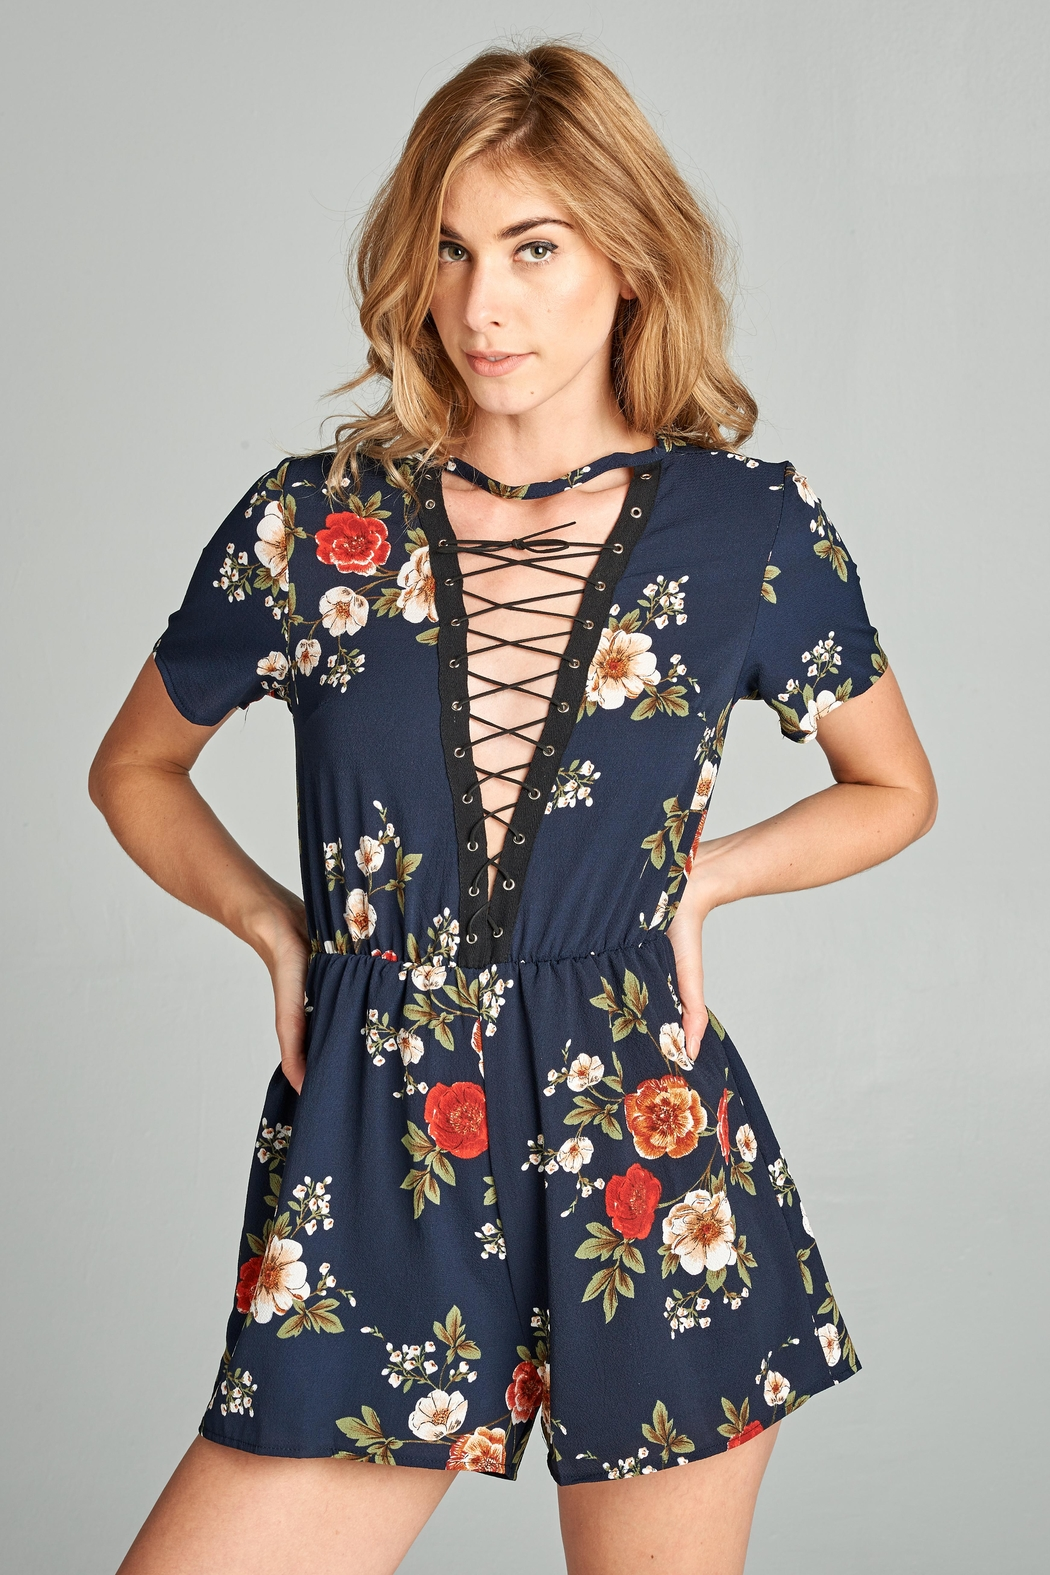 Racine Navy-Floral Lace-Up Romper - Main Image